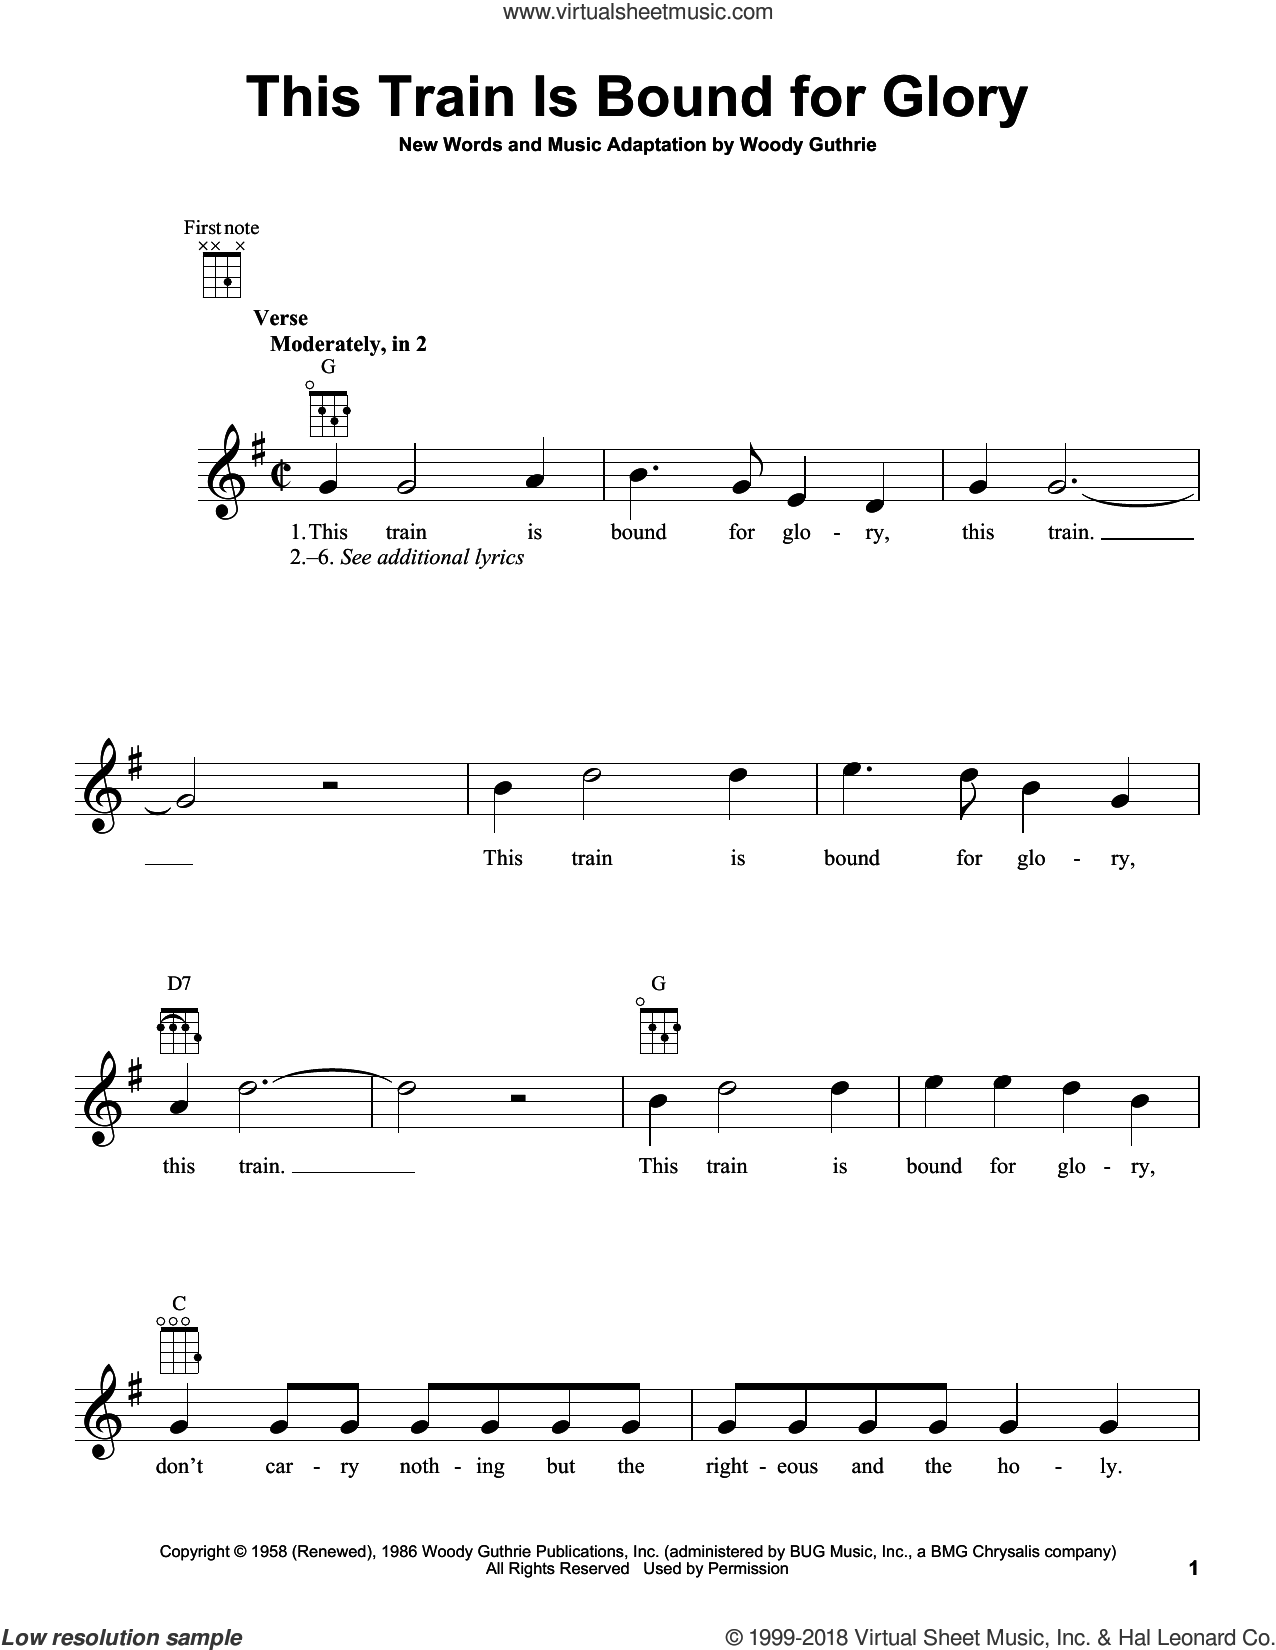 This Train Is Bound For Glory sheet music for ukulele by Woody Guthrie, intermediate skill level